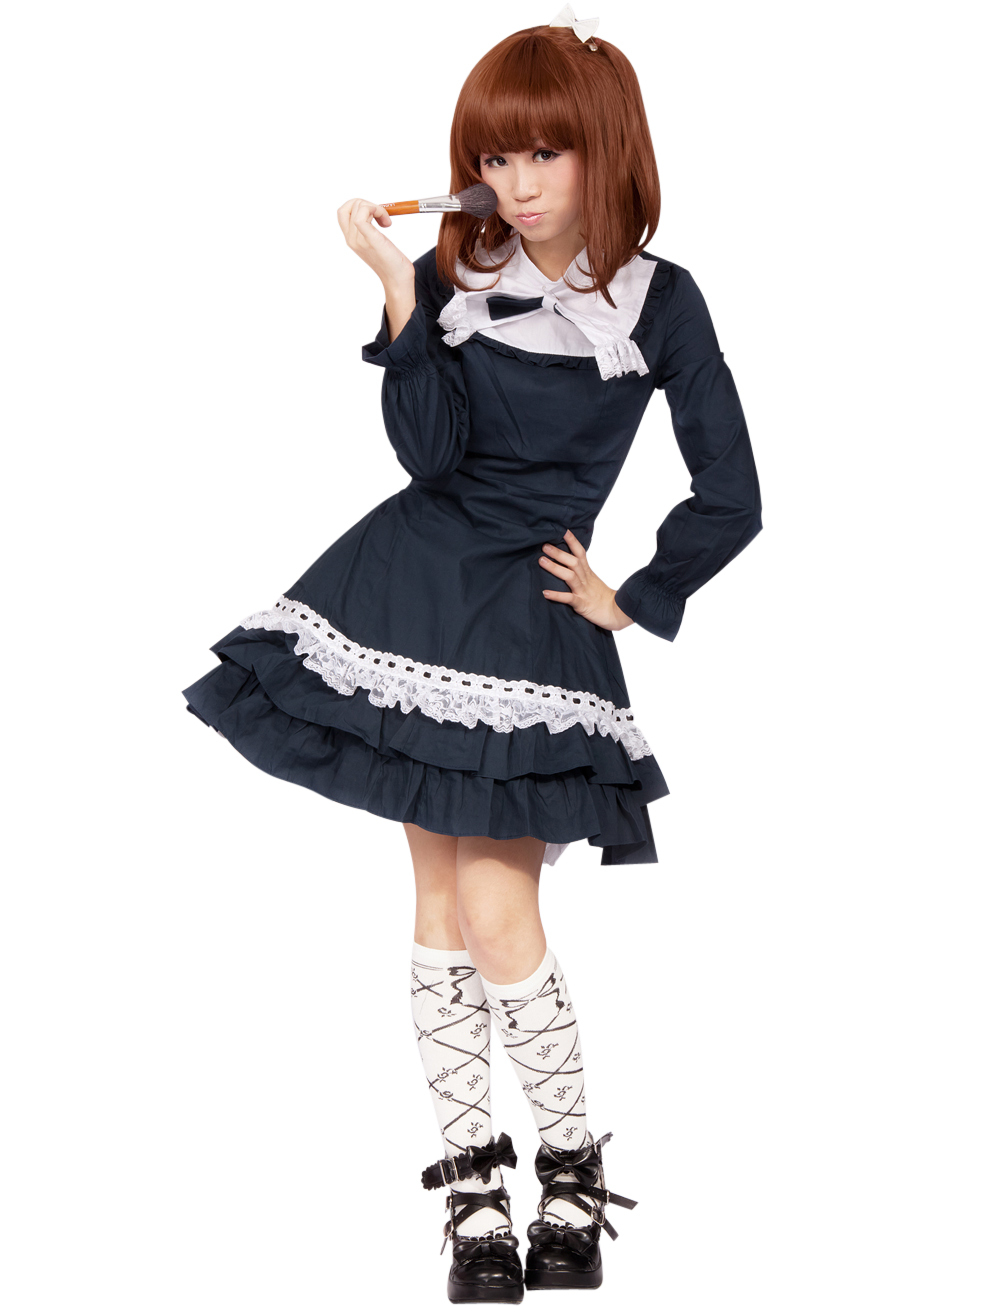 Primary image for ZeroMart Navy Blue Cotton Lace Ruffle Bow Victorian School Cosplay Lolita Dress